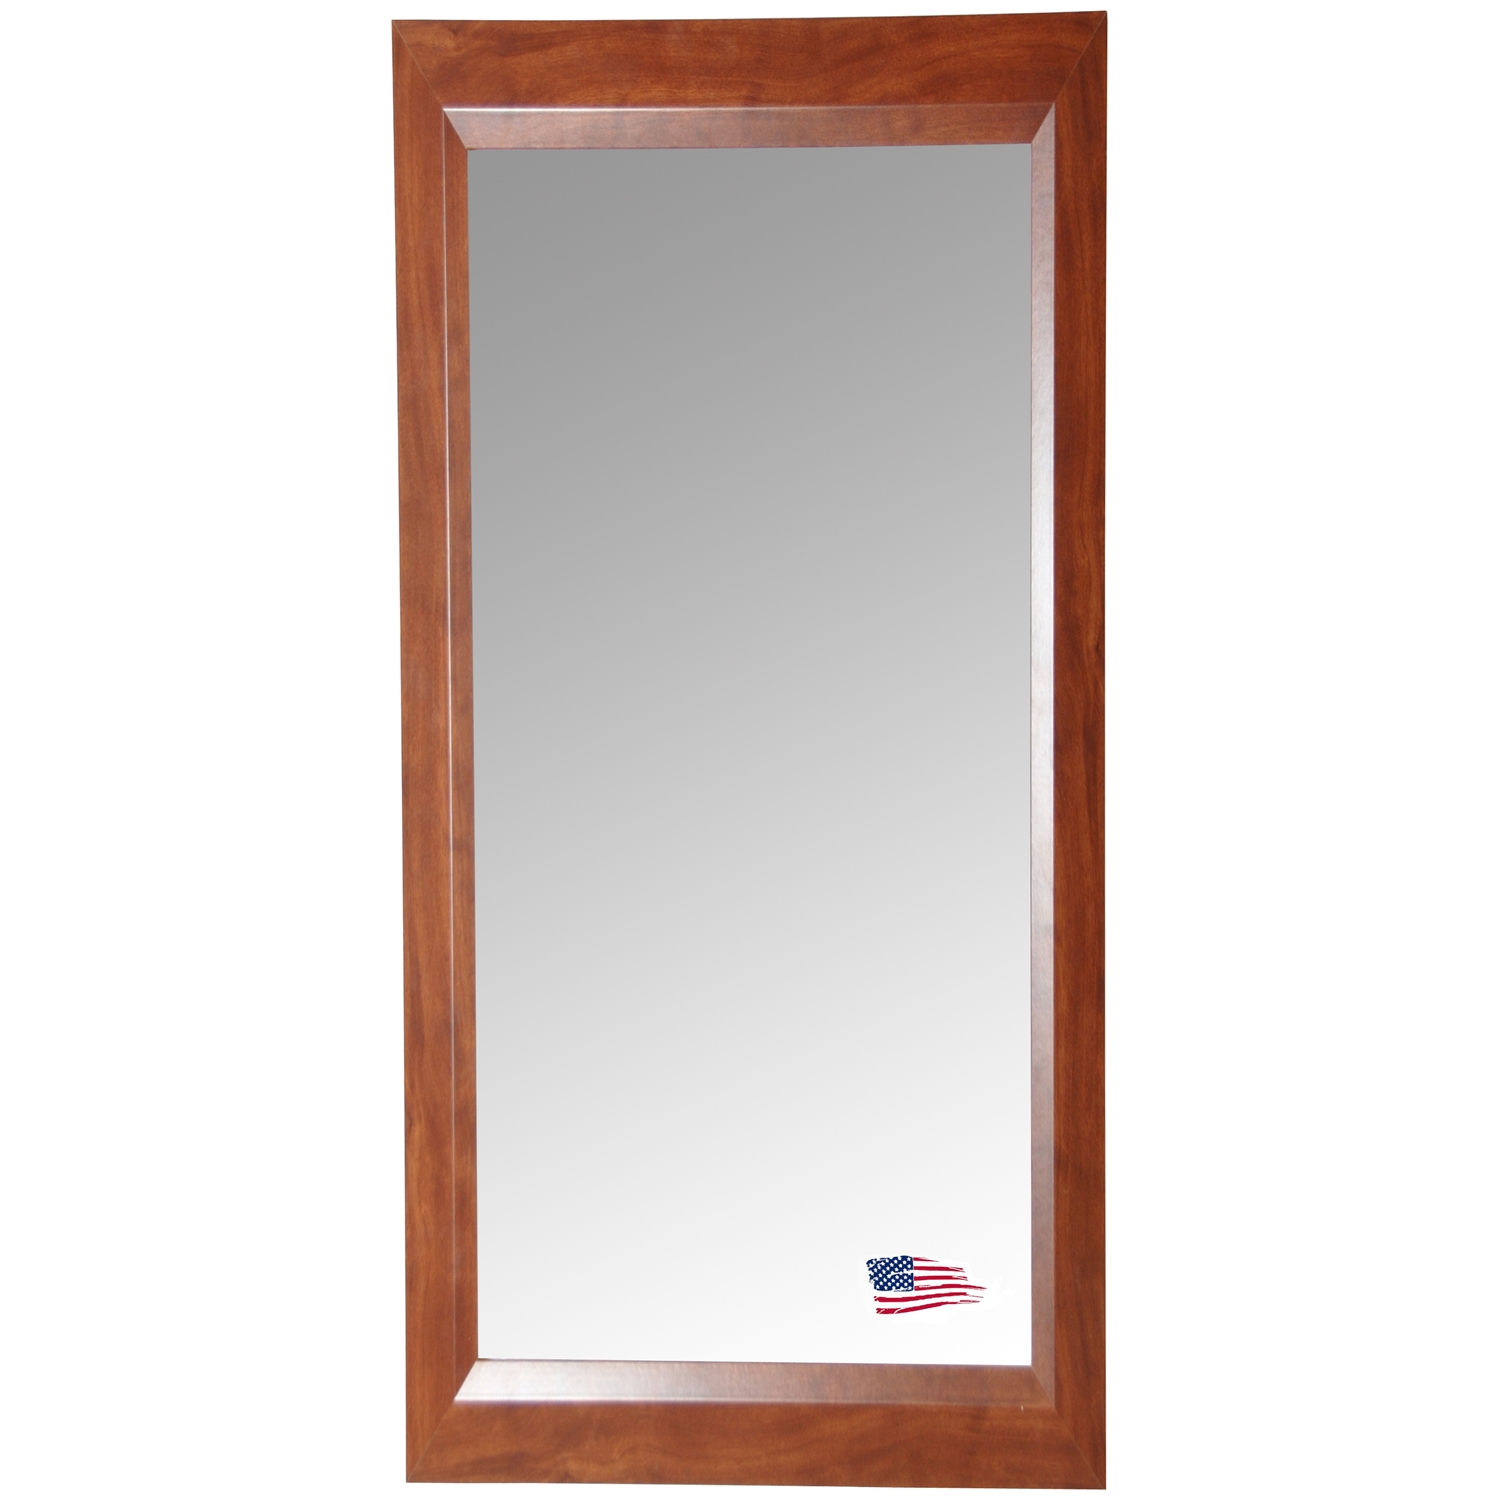 Rectangular Mirror - Walnut Finished Frame - RAY-R016T